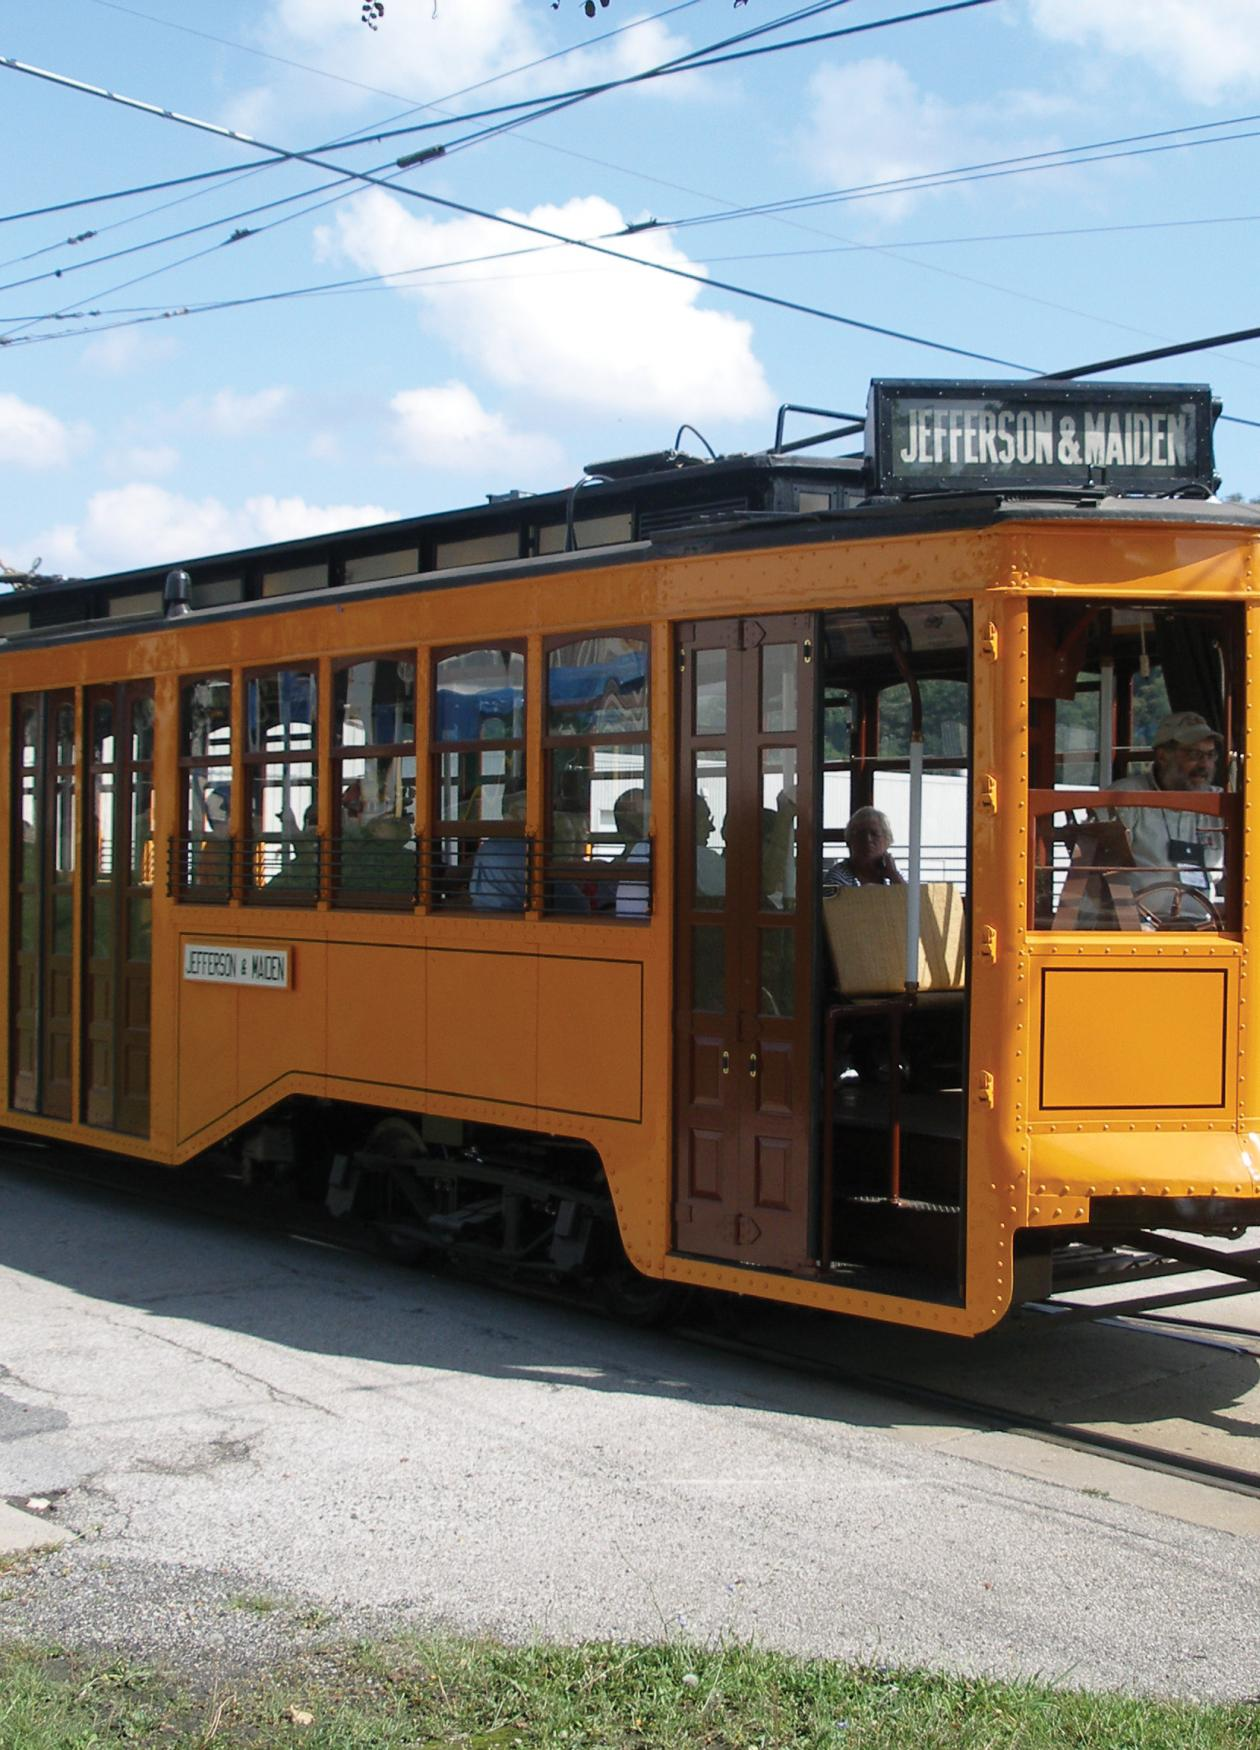 Color photo of a yellow trolley making its way.